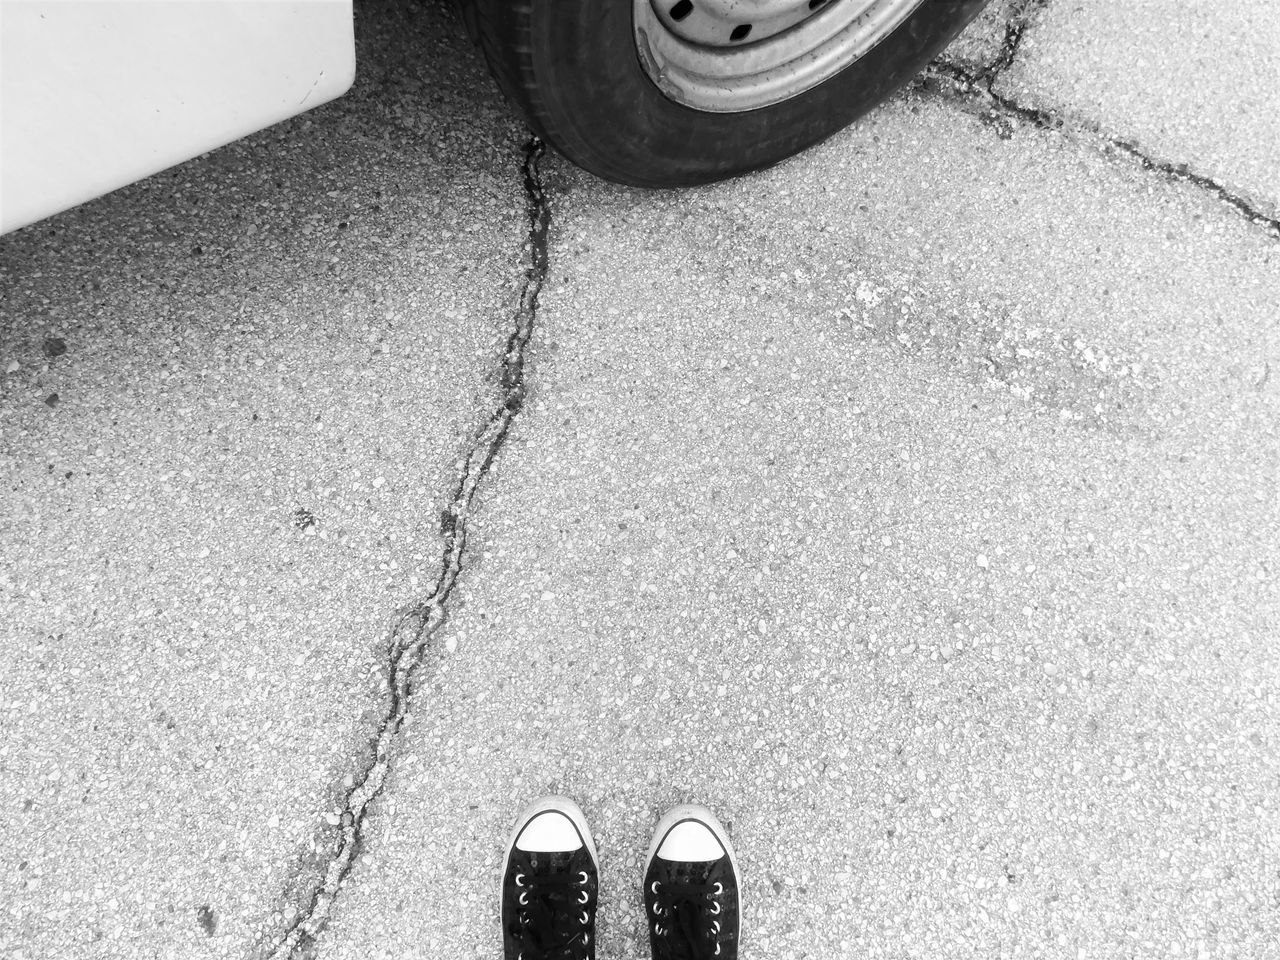 Close-up Day Low Section Monochome Photography Outdoors People Person Real People Blackandwhite Random Acts Of Photography Light And Shadow Darkness And Light Shoes Me Concrete Jungle Converse Converse Shoes My Unique Style Tire Florida Notes From The Underground Lifestyles Streetphotography Cracked Ground From My Point Of View